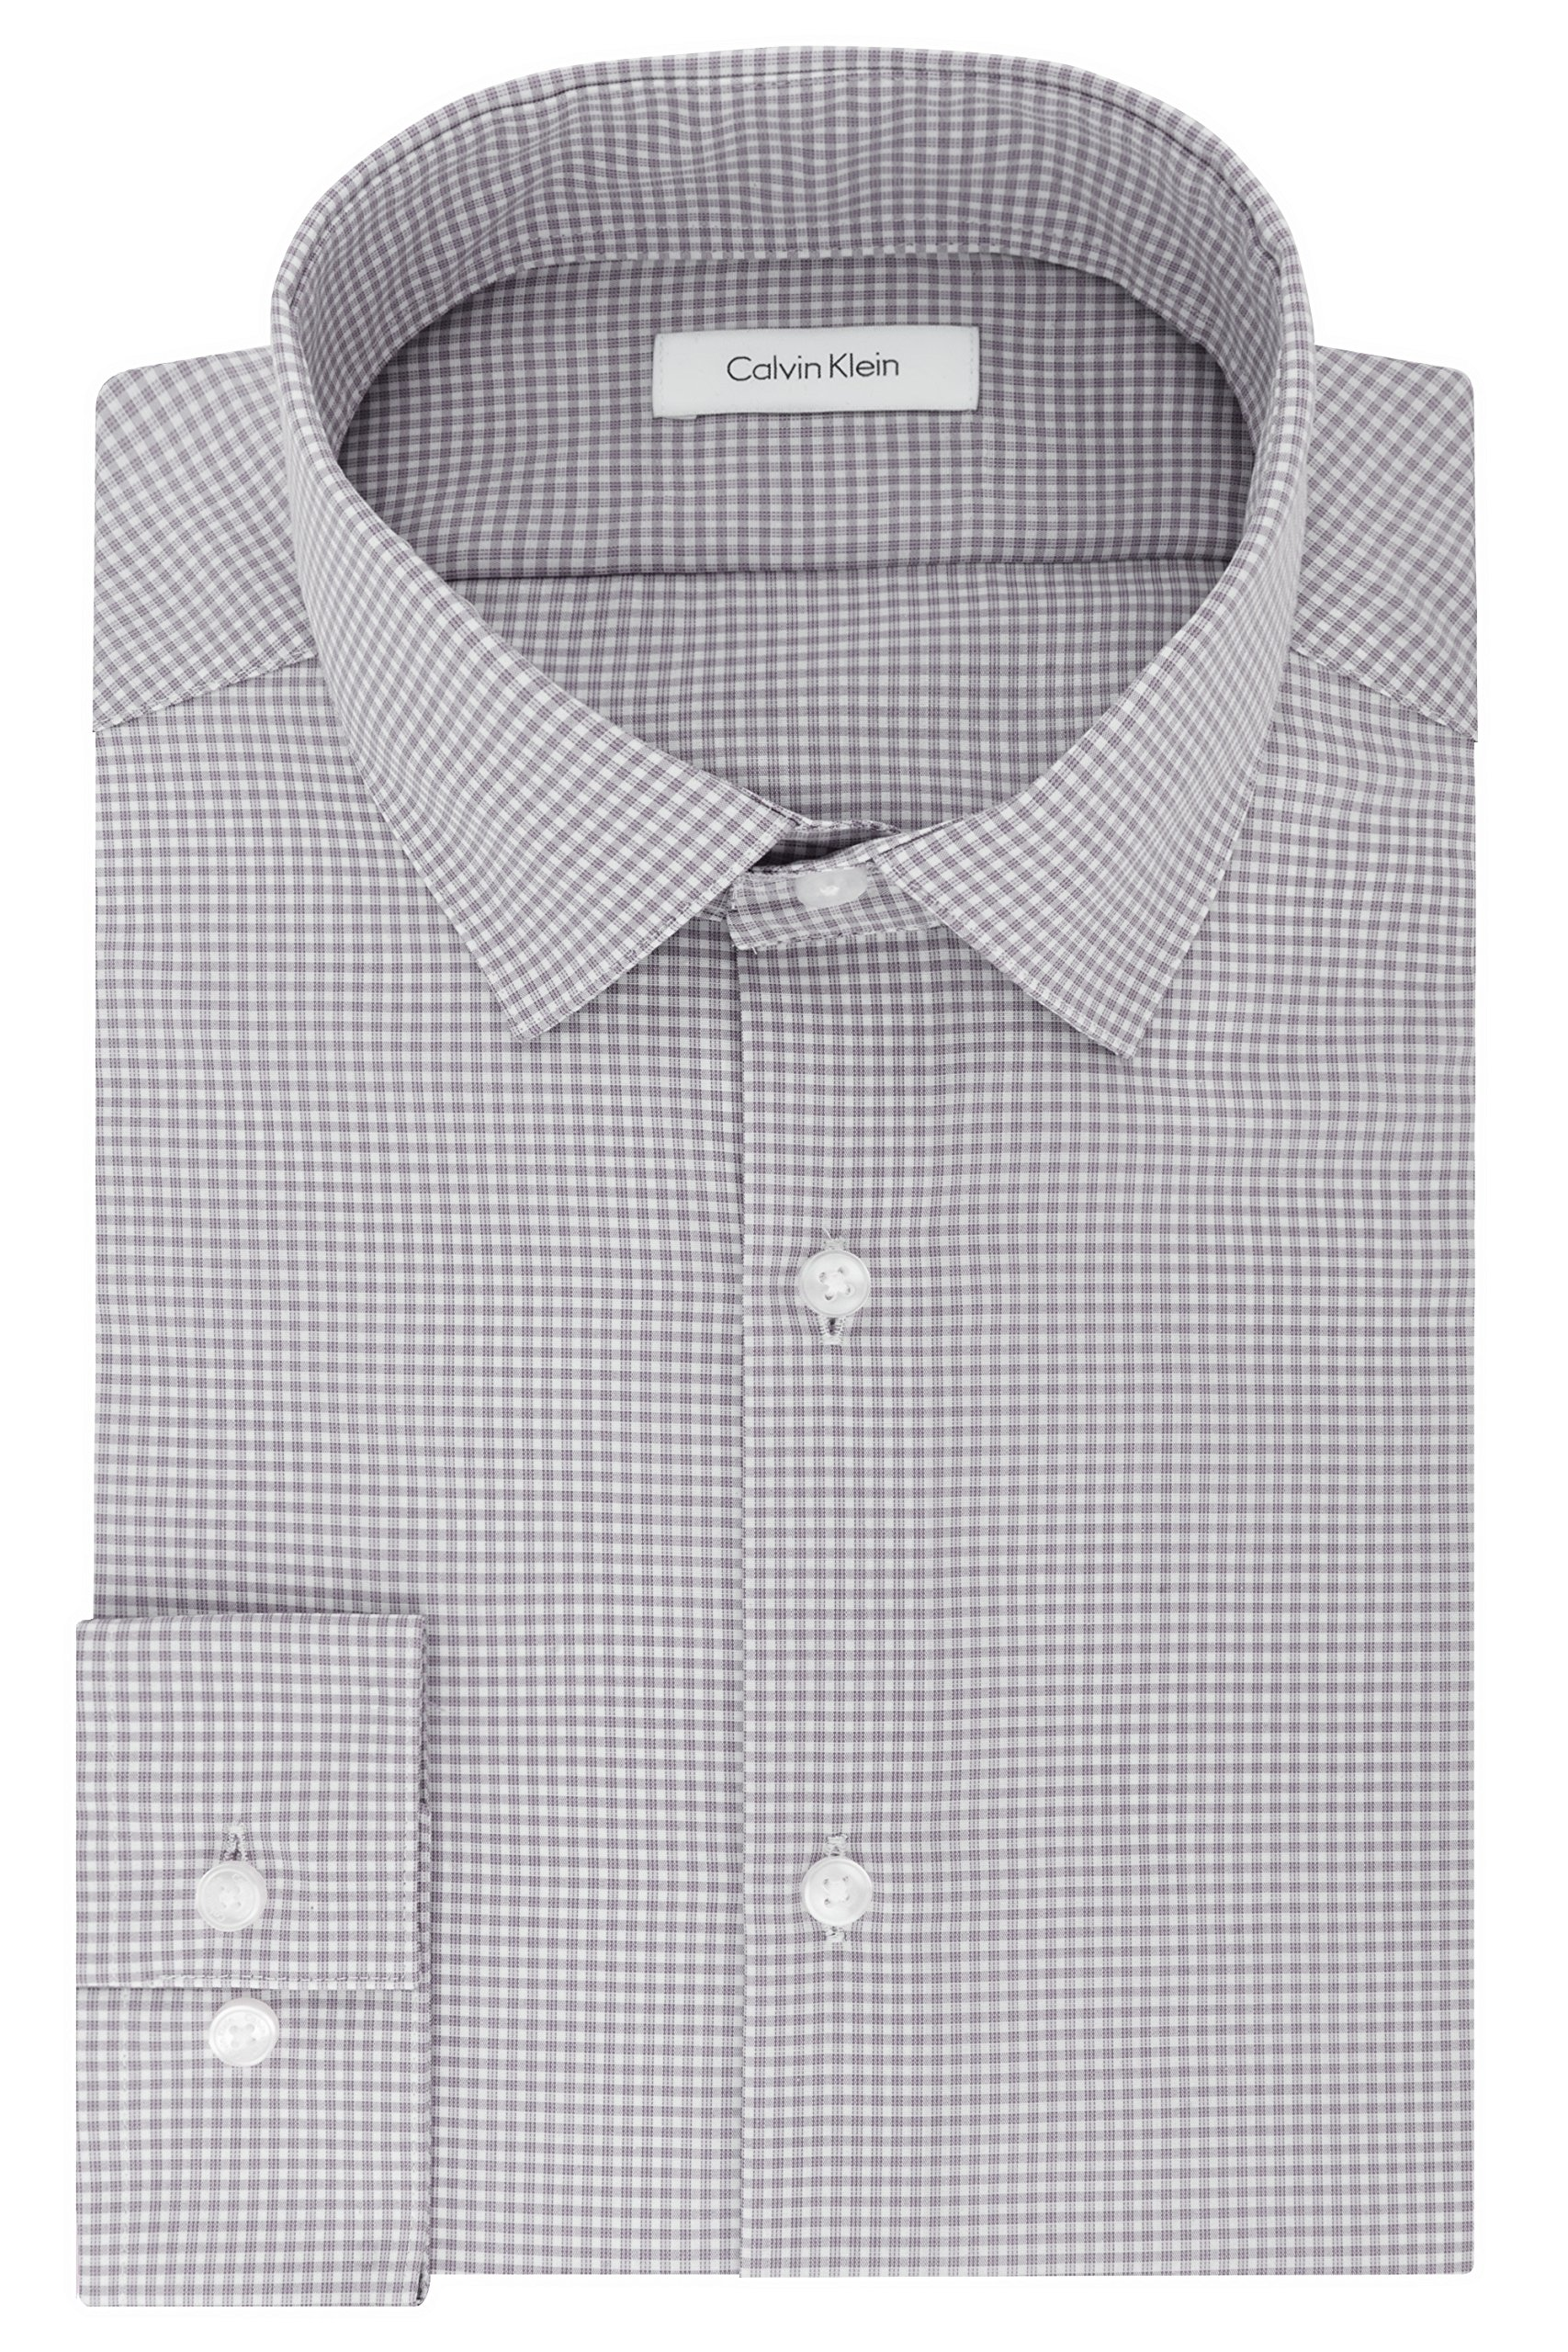 Calvin Klein Men's Big and Tall Dress Shirts Non Iron Slim Fit Gingham Spread Collar, Grey, 18.5'' Neck 36''-37'' Sleeve